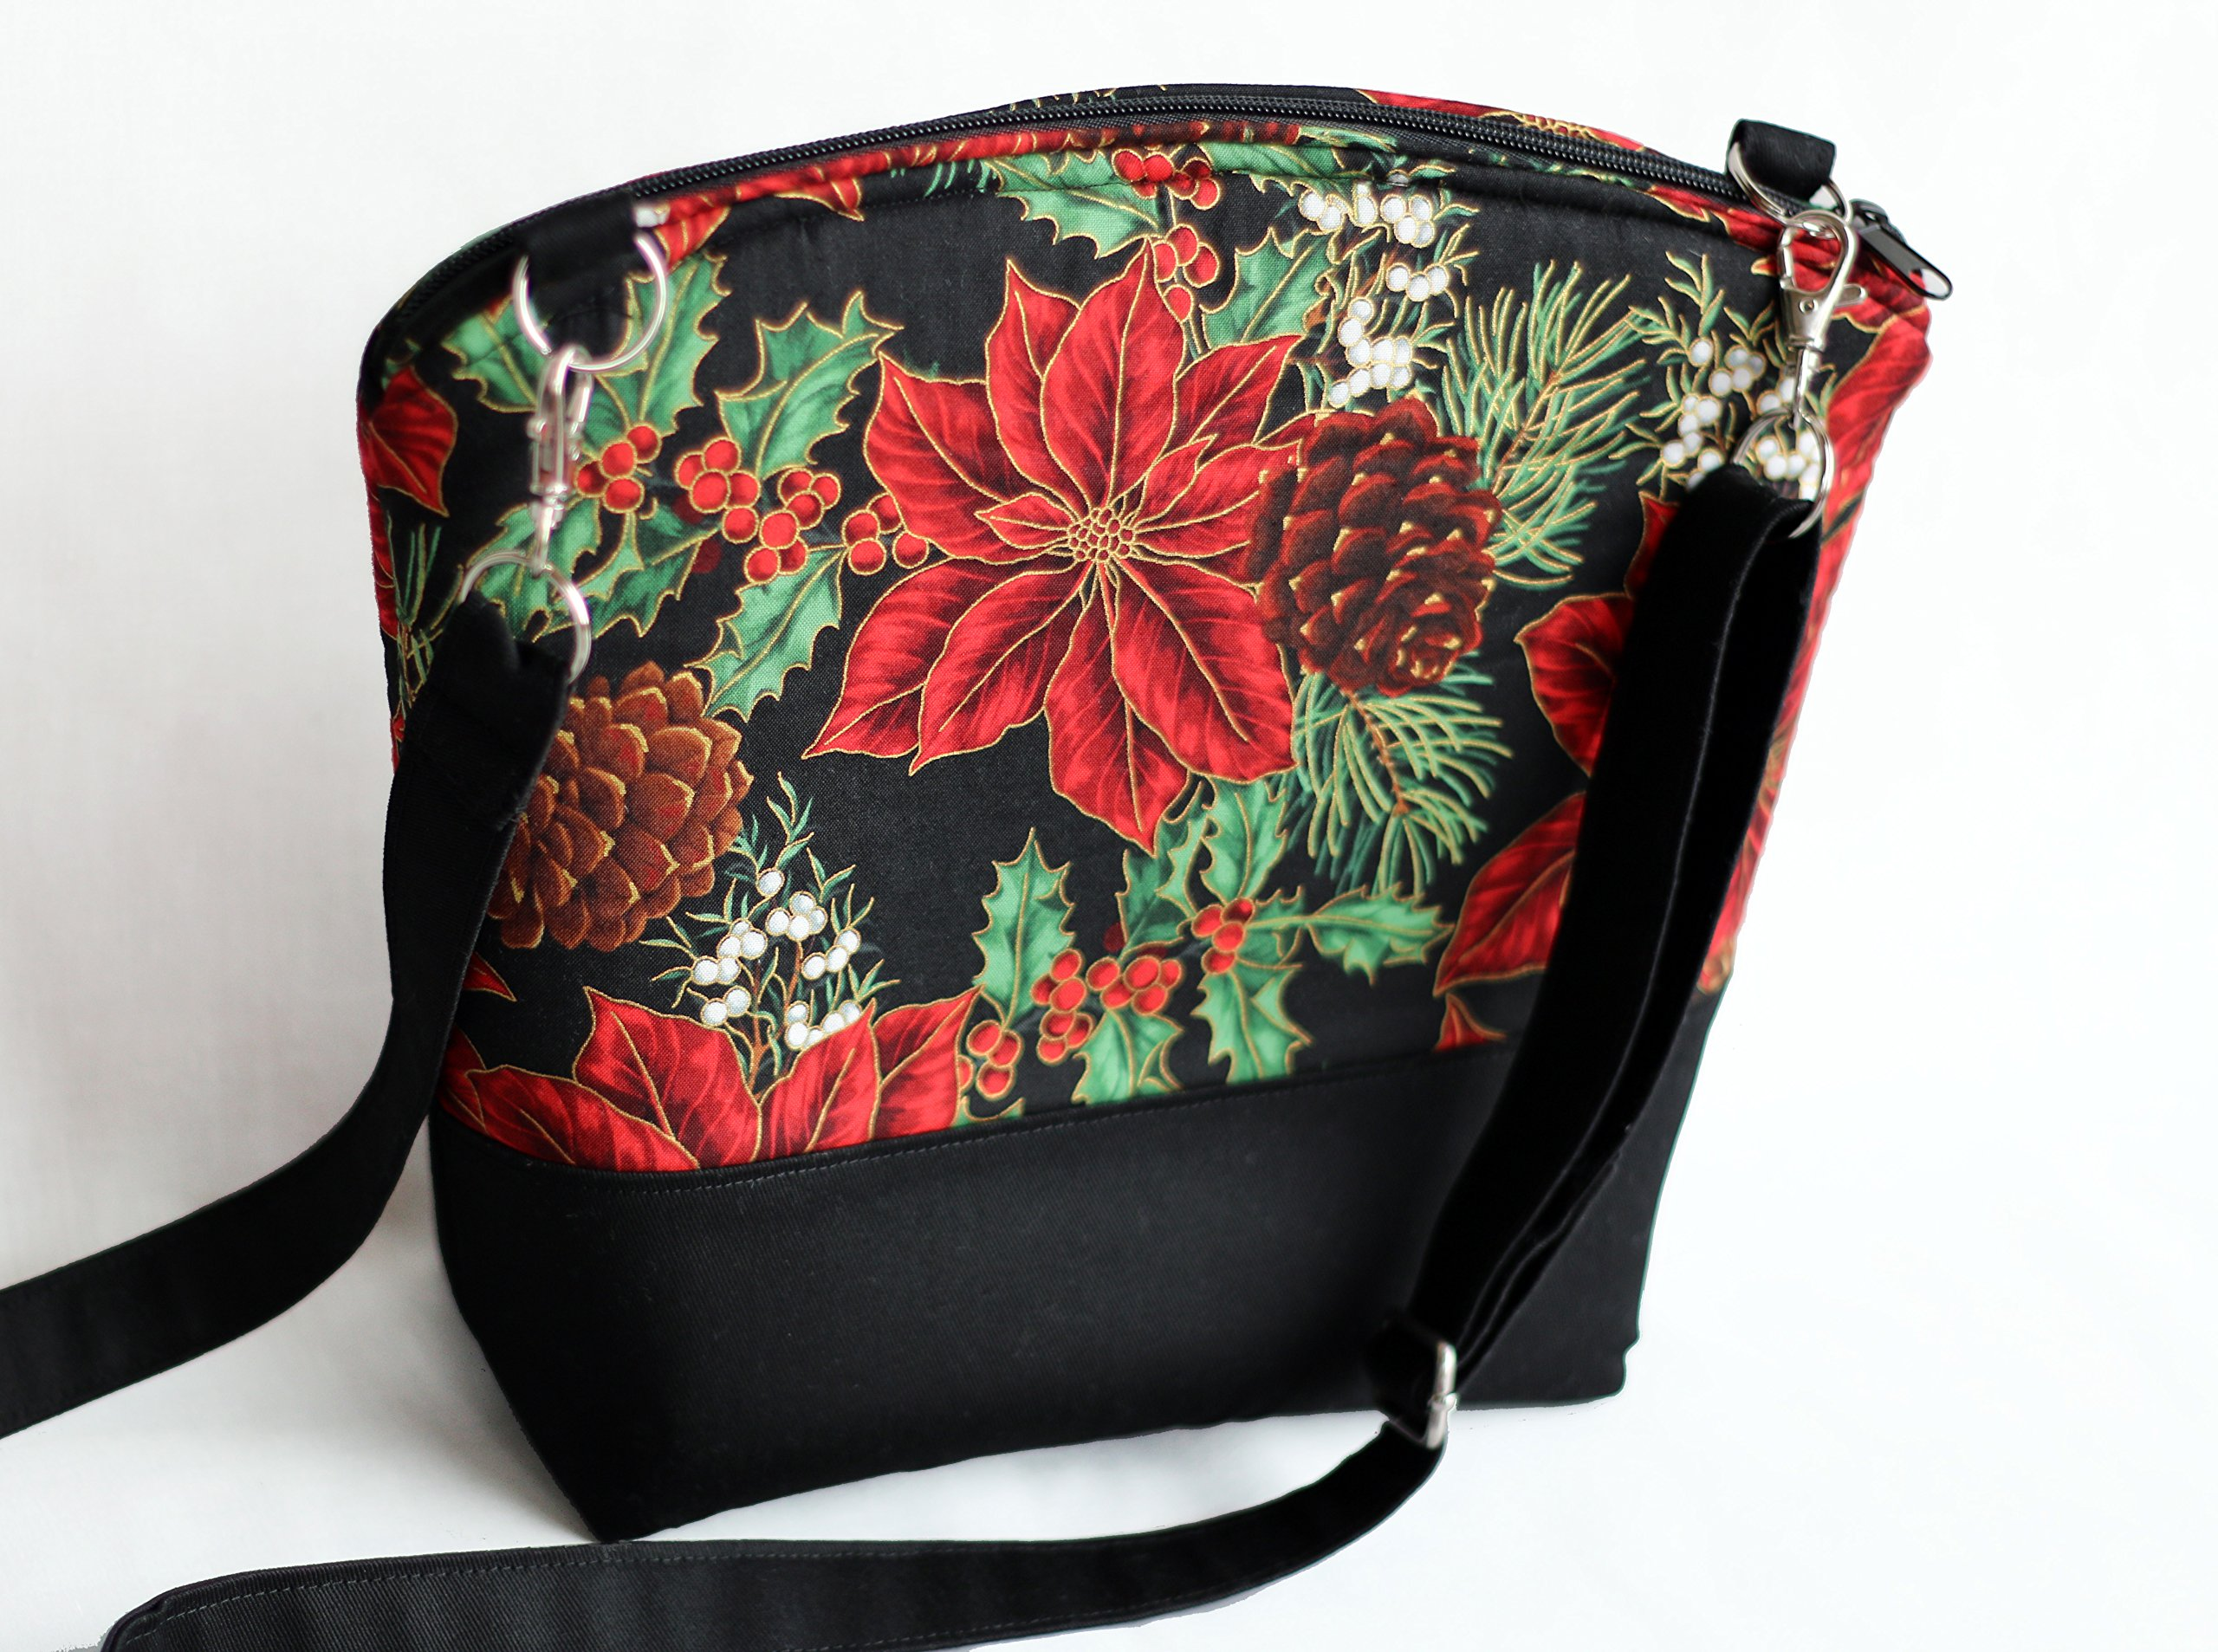 Lightweight Christmas arm / cross body purse. Poinsettia pattern. Fully padded with foam and lined with black cotton fabric. With zipper and interior pockets. Washable and iron safe. by Spool of Charm